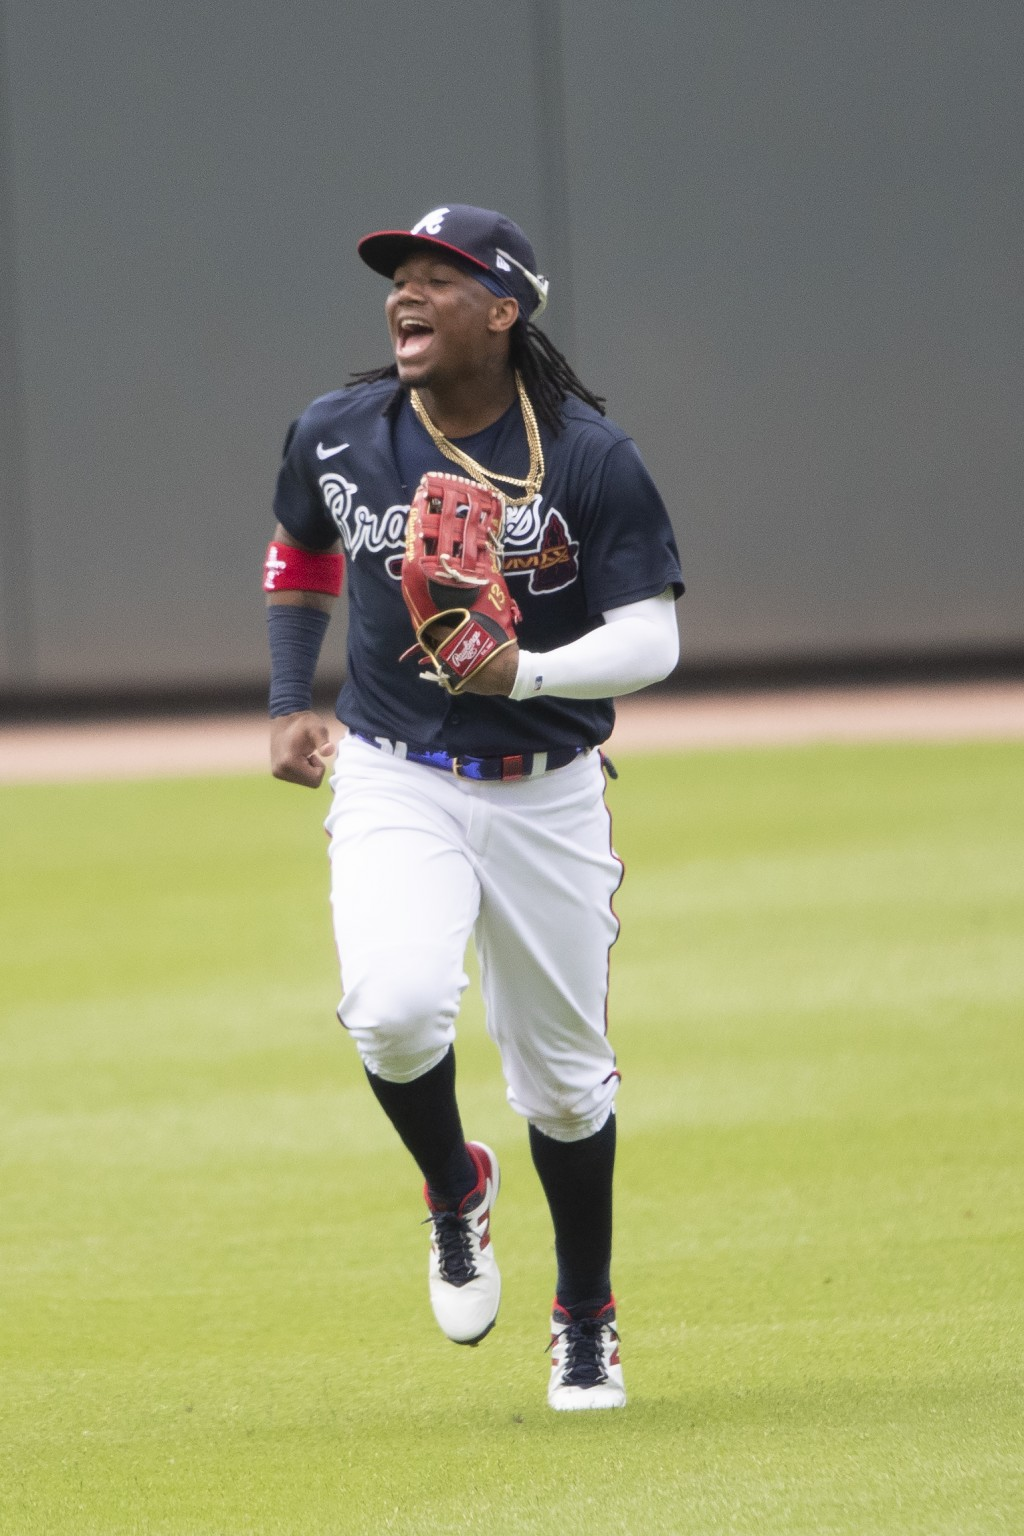 Atlanta Braves center fielder Ronald Acuna Jr. (13) jokes with teammates as he runs in from the outfield during a practice baseball game, Thursday, Ju...